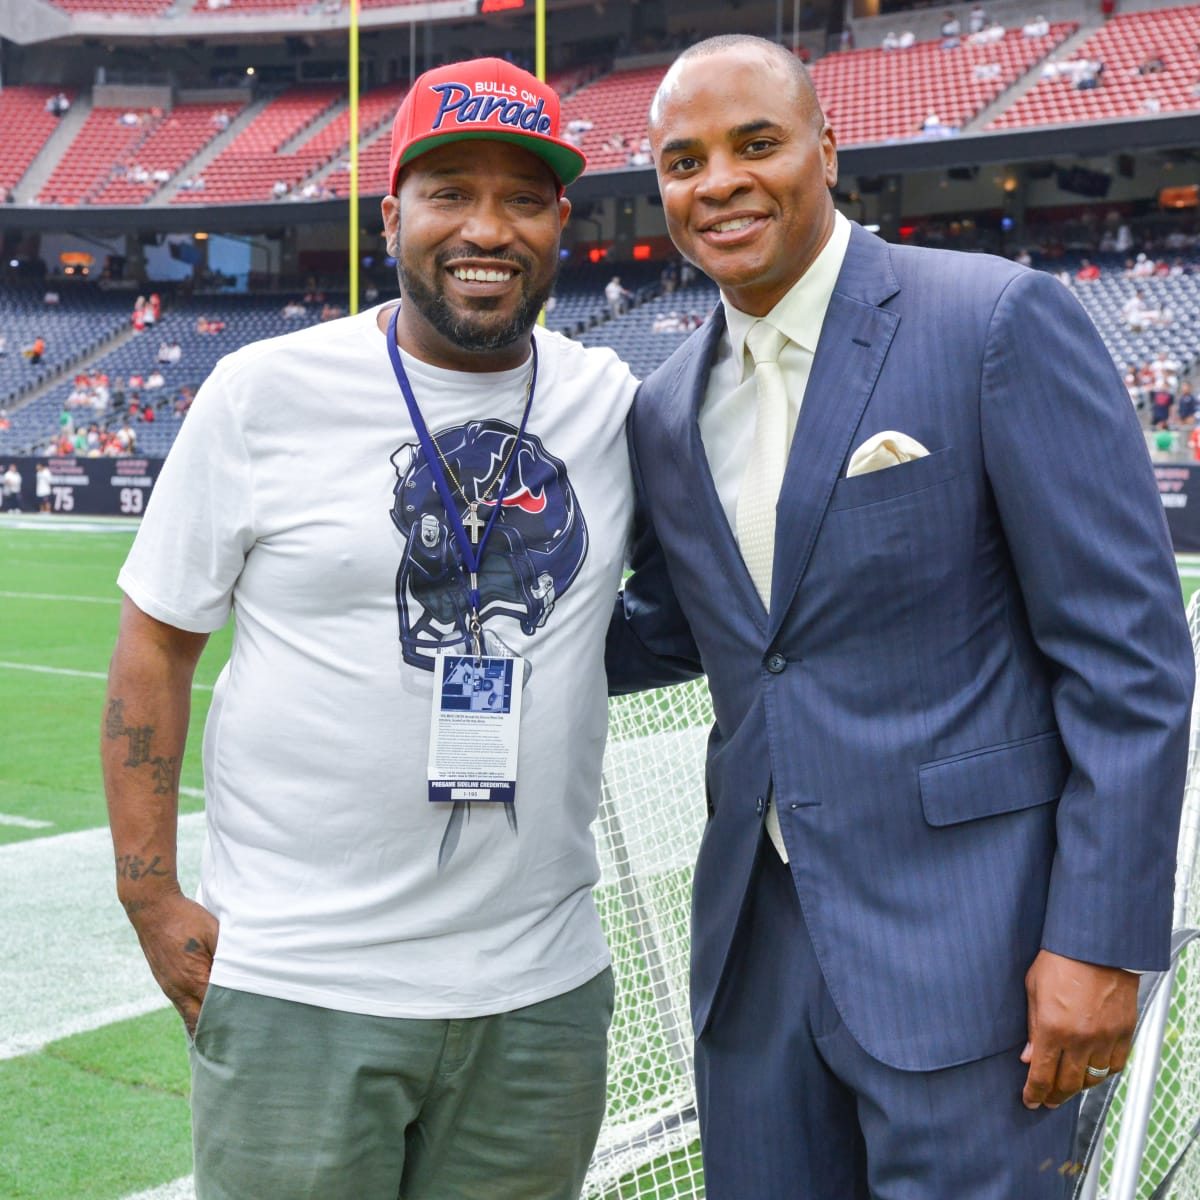 News, Shelby, Texans Owners suite, Sept. 2015, Bun B, Rick Smith